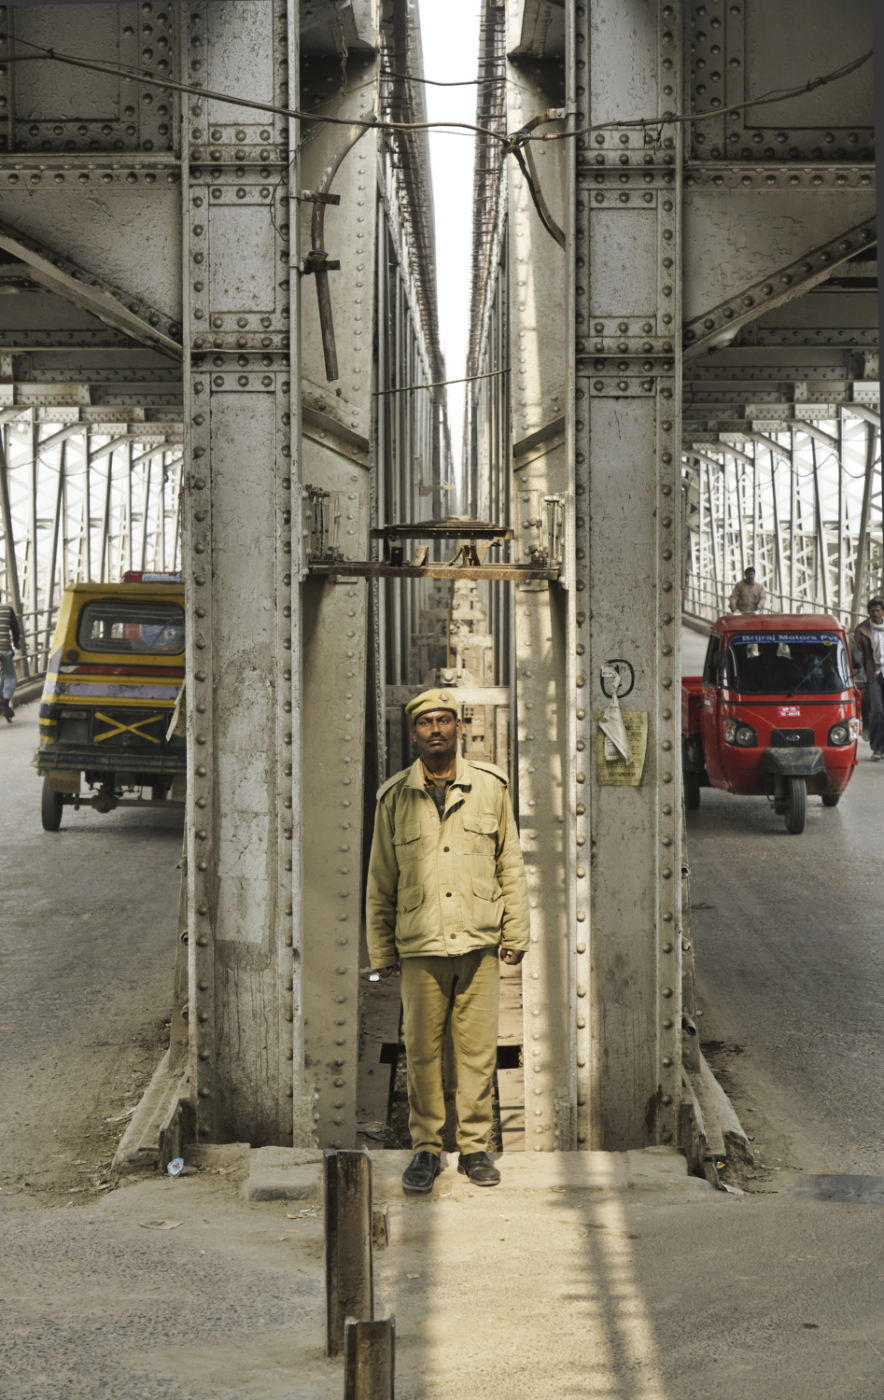 Watching the traffic, India